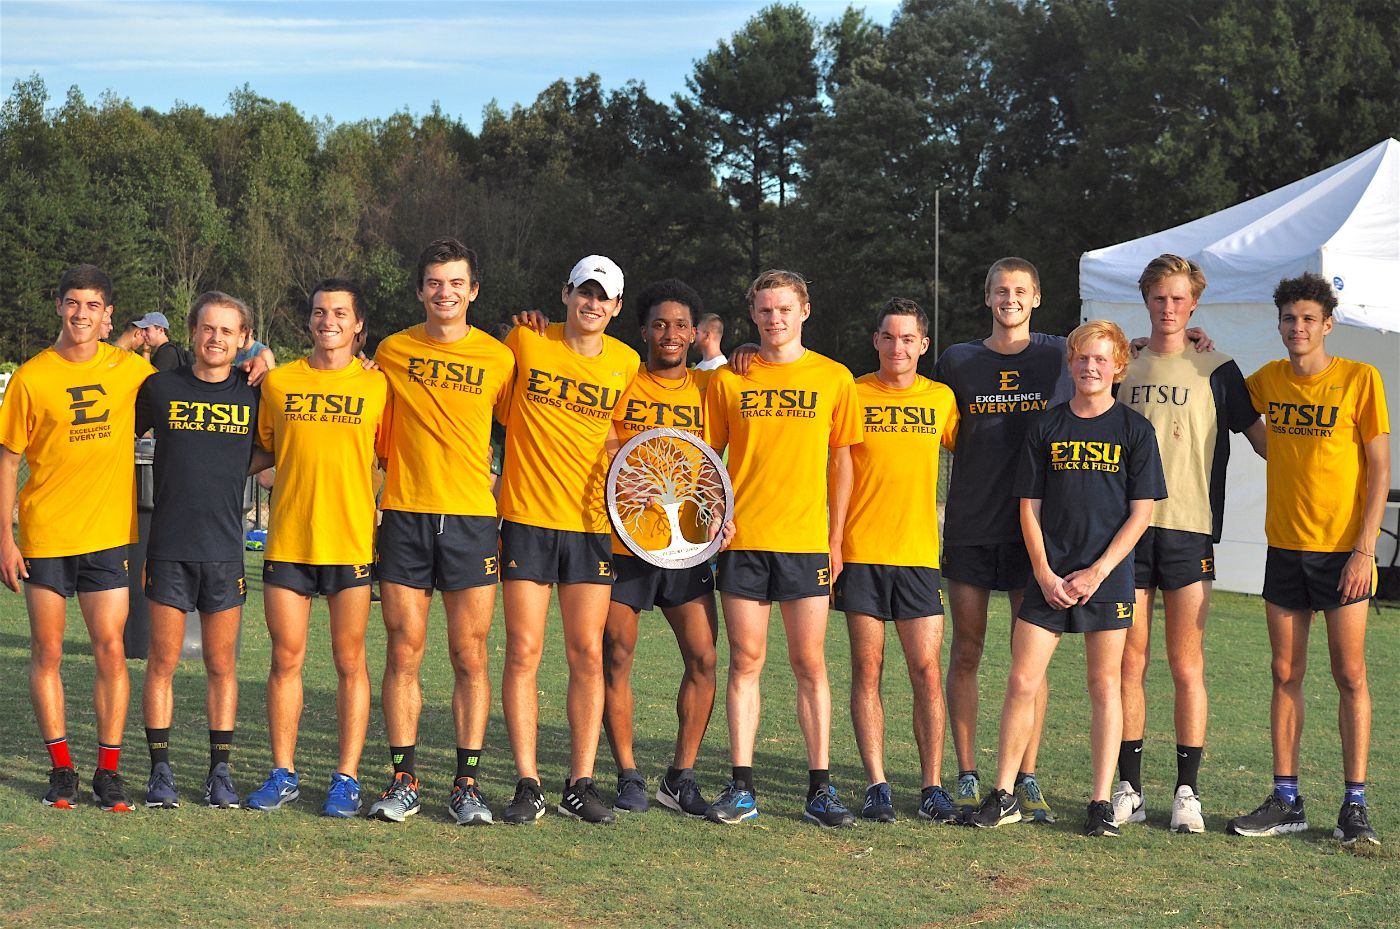 ETSU Men Cruise to Crown at High Point Invite, Women Strong in Sixth-Place Showing